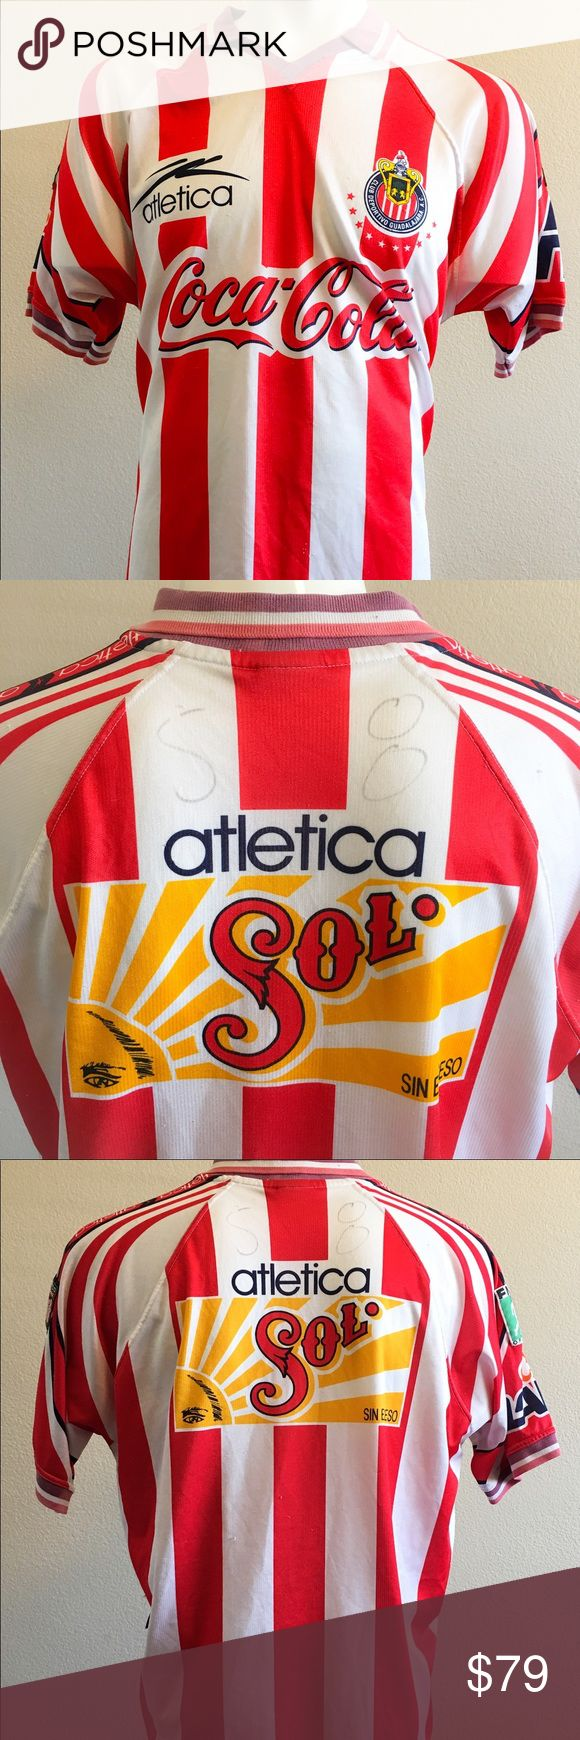 Atletica Coca-Cola Jersey Club Deportivo Shirt Atletica Mexico Club Deportivo Guadalajara FMF Official Jersey Shirt -Preowned shows signs of Wear  Size: XL -T- Atletica  Shirts